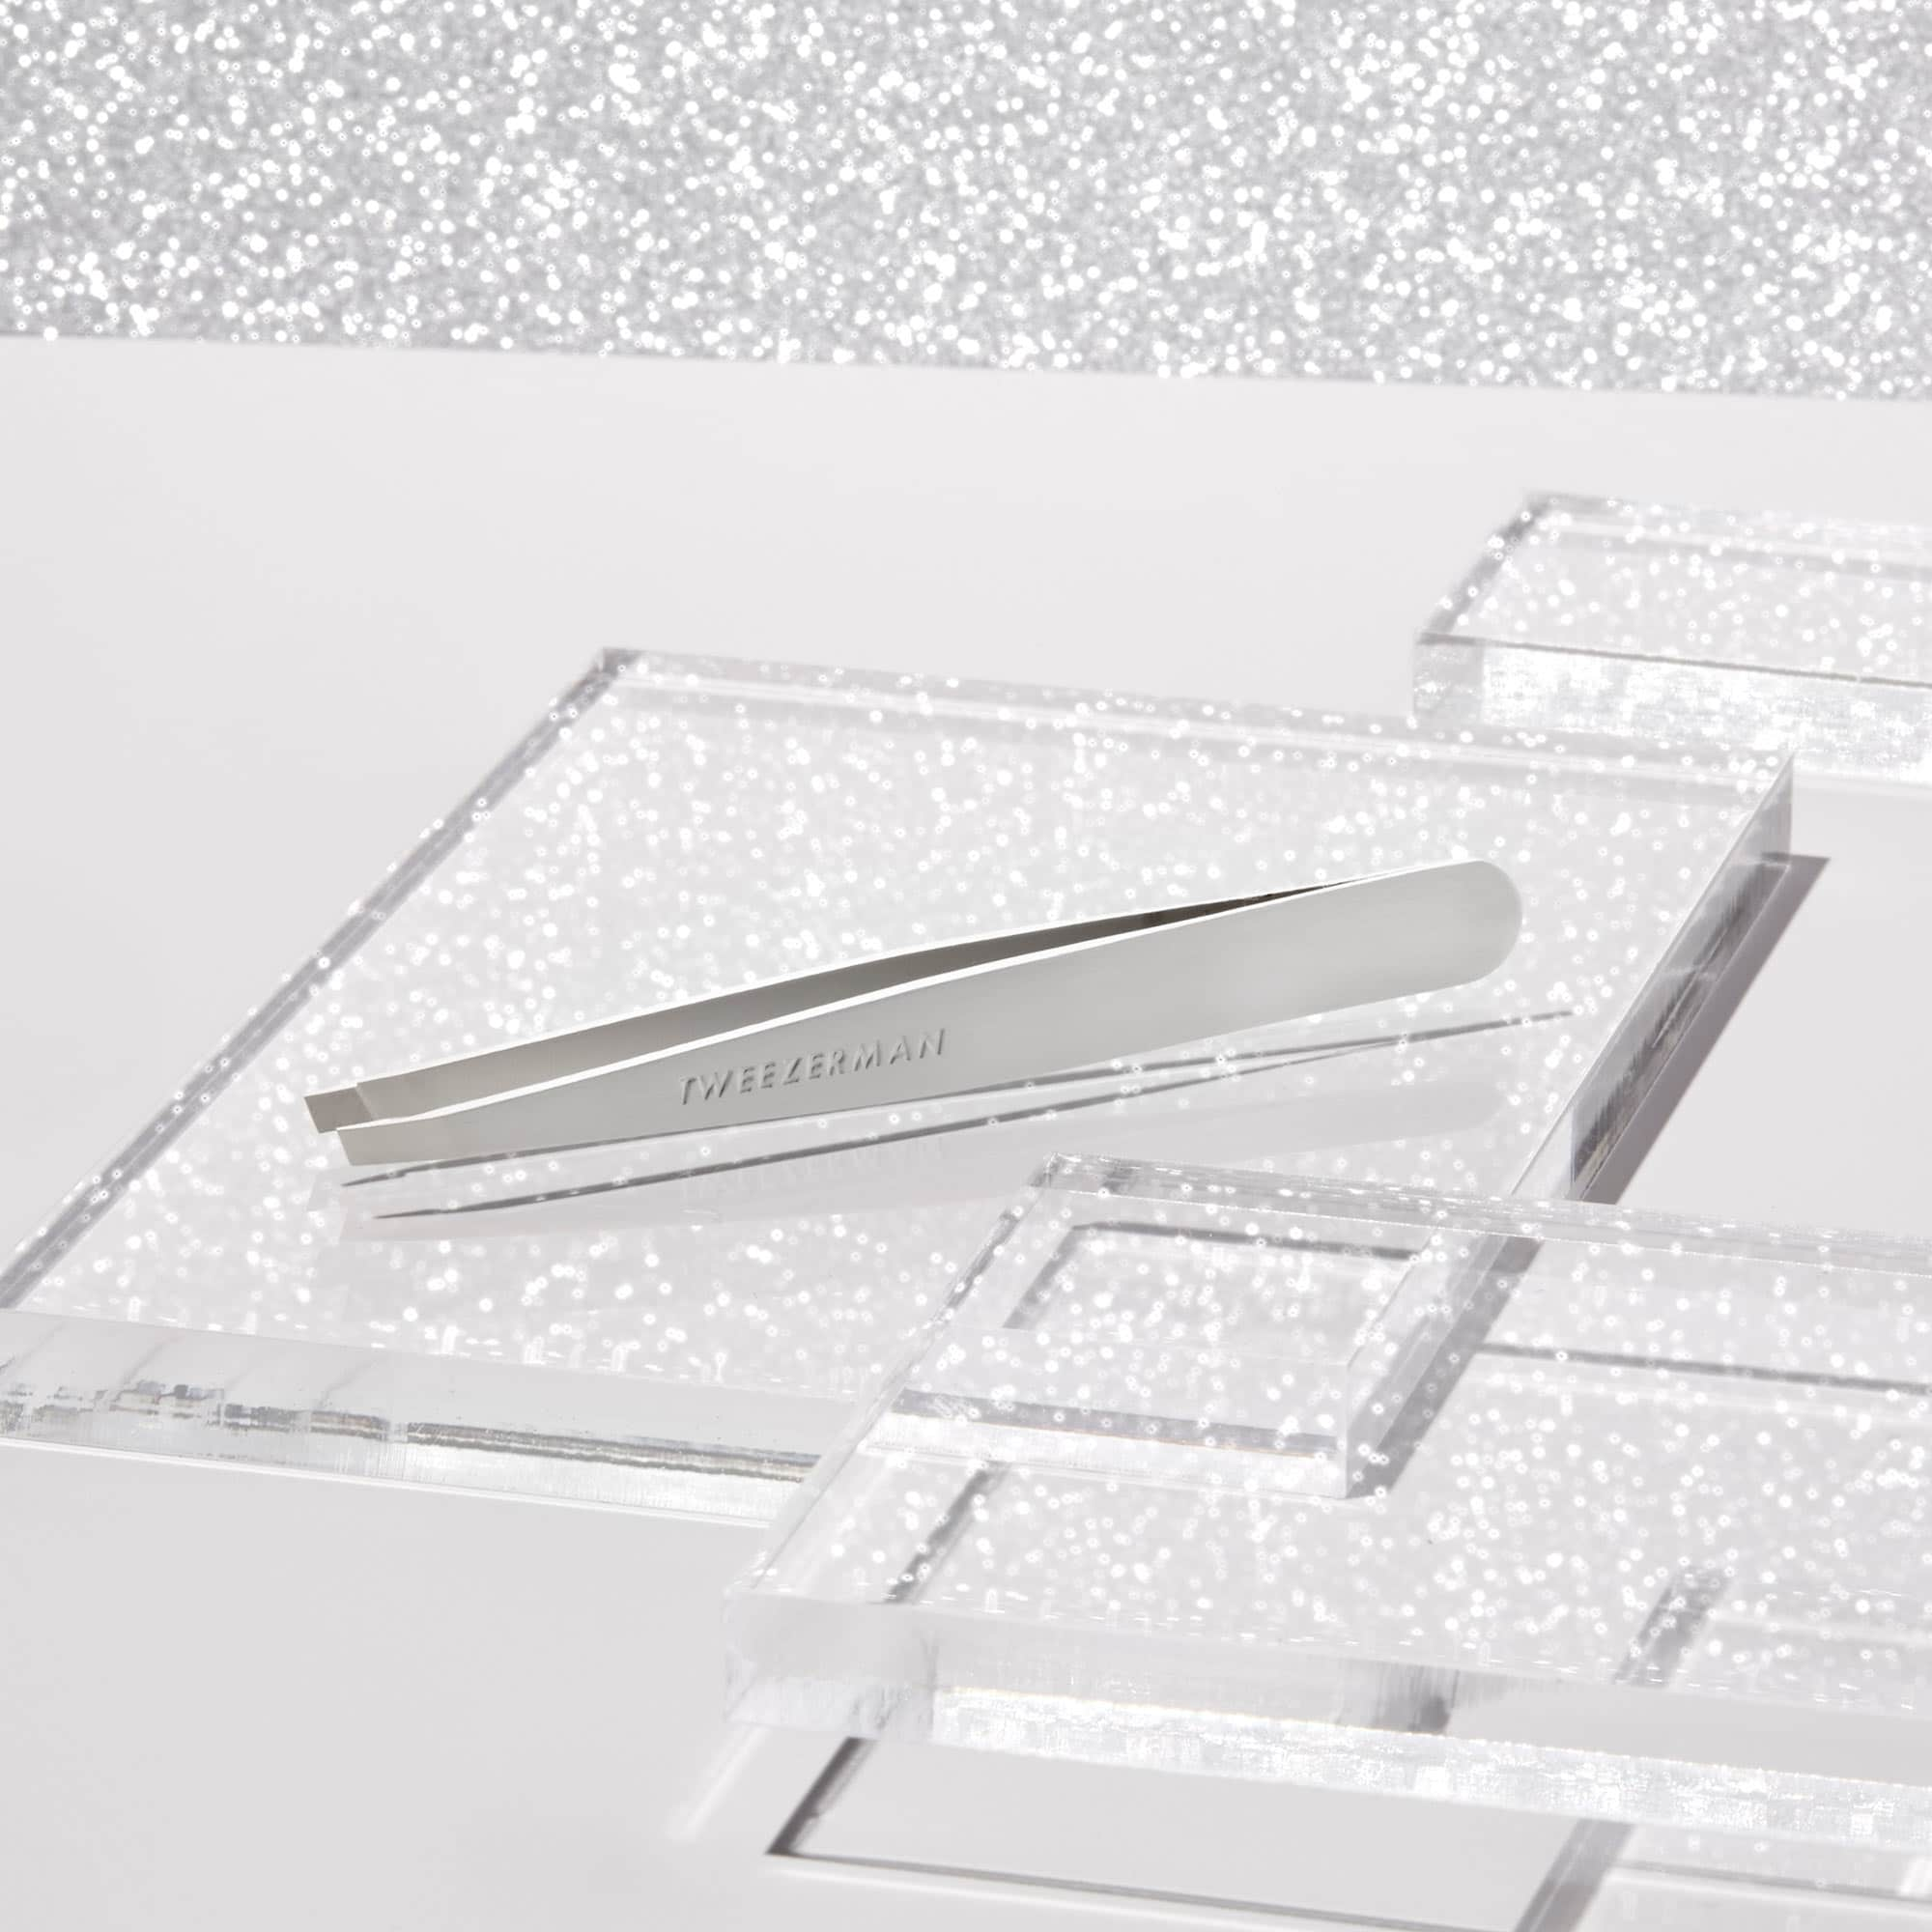 Tweezerman Limited Edition Platinum Slant Tweezer